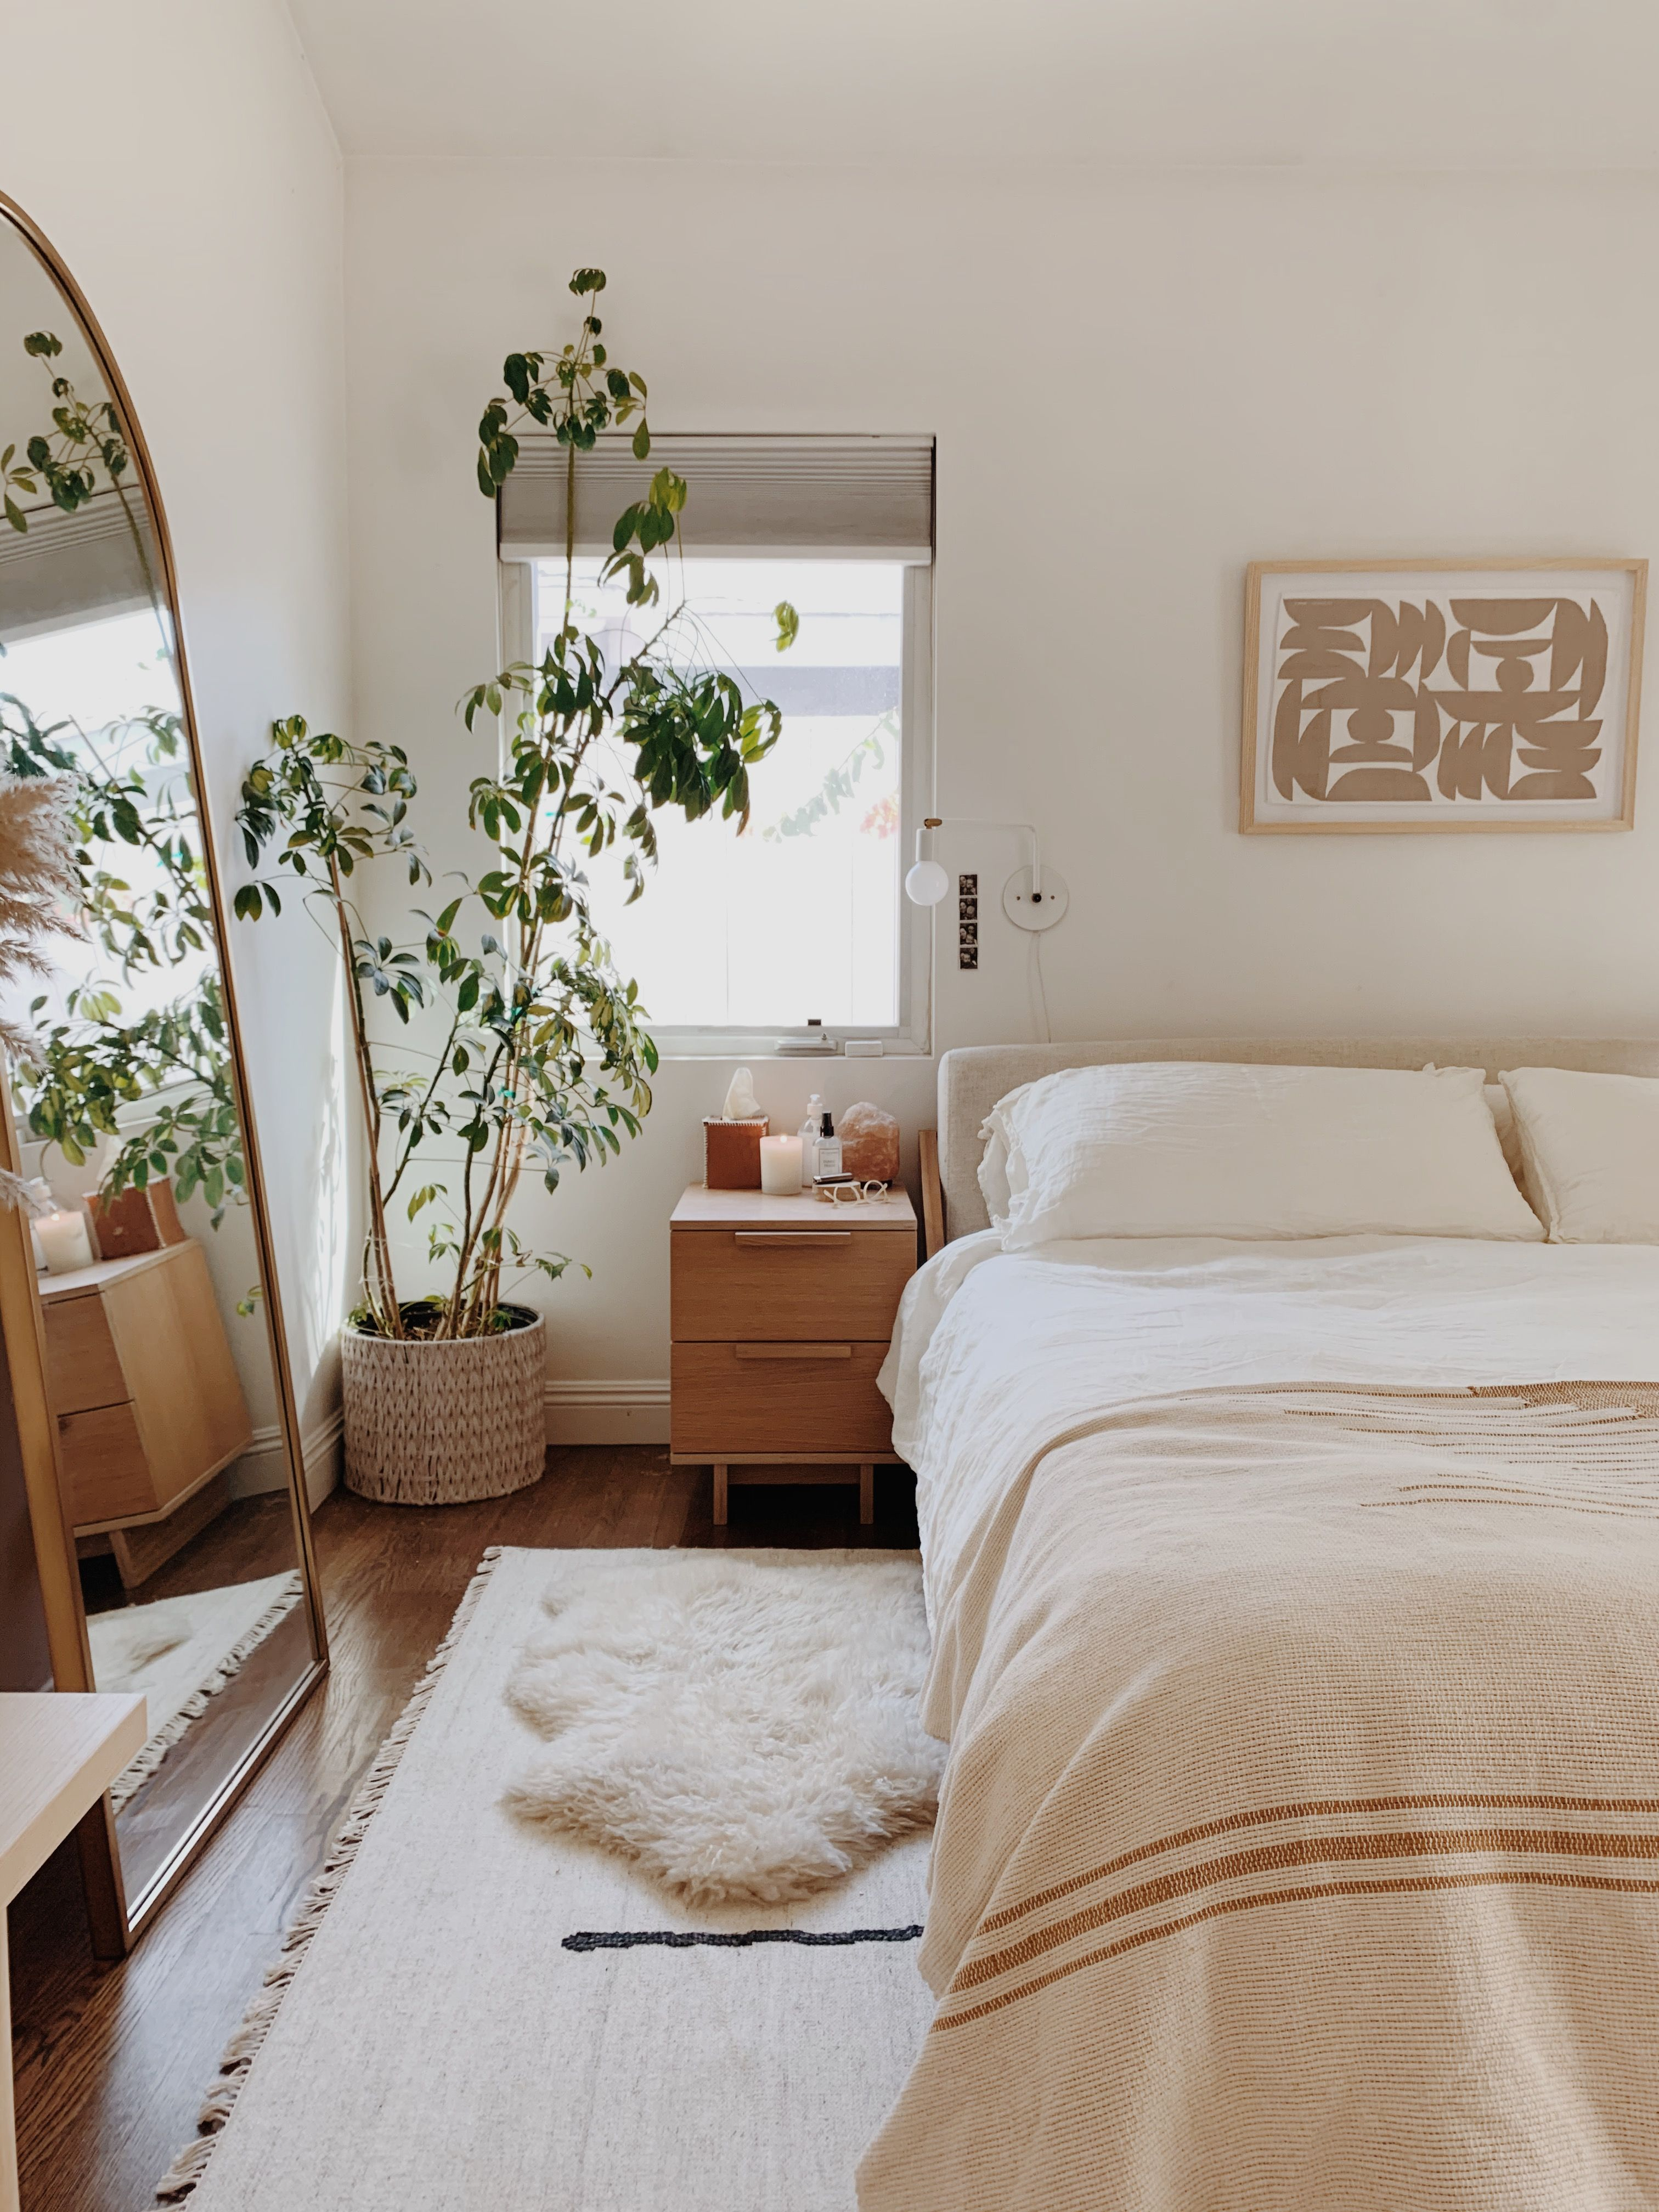 7 ways to cozy up your bedroom for fall - almost makes perfect